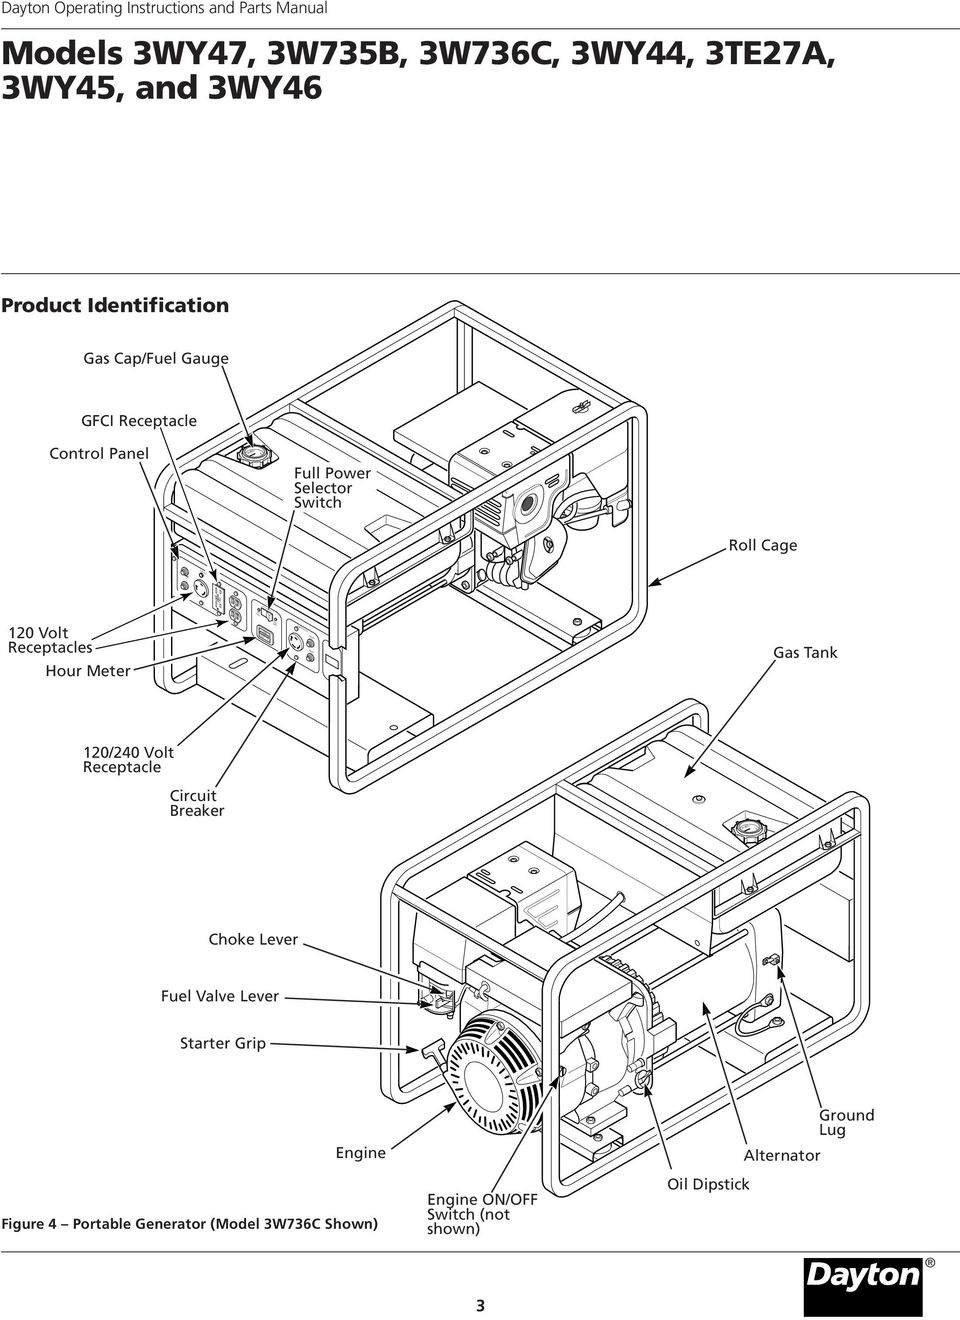 dayton exhaust fan manual